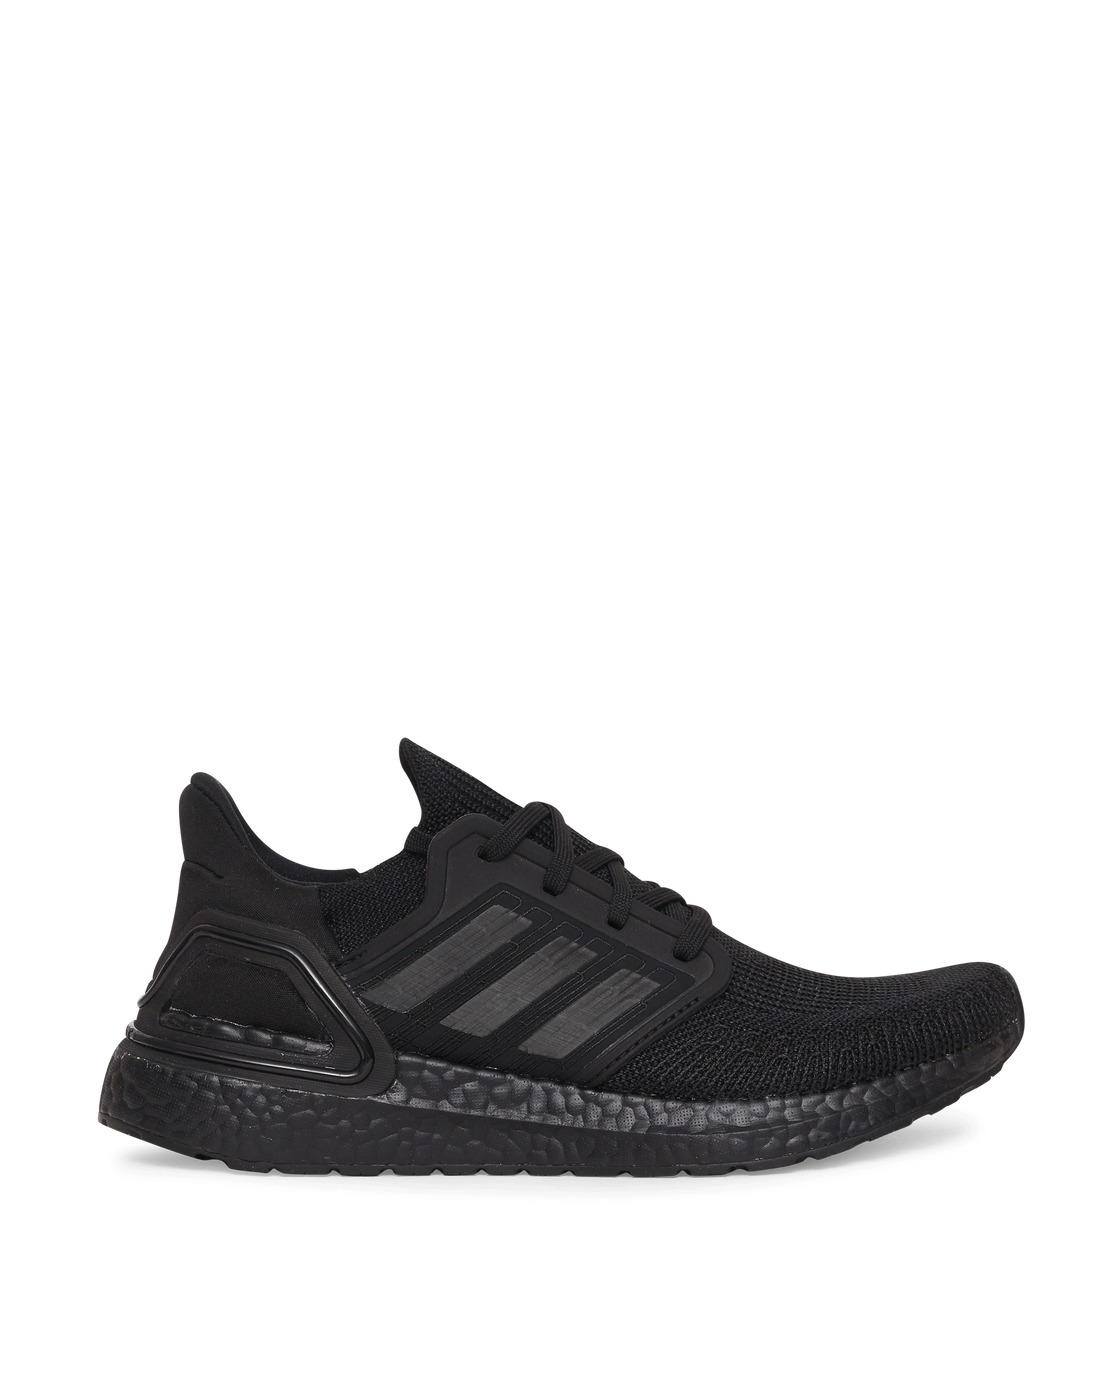 Adidas Originals Ultraboost 20 Sneakers Core Black/Solar Red